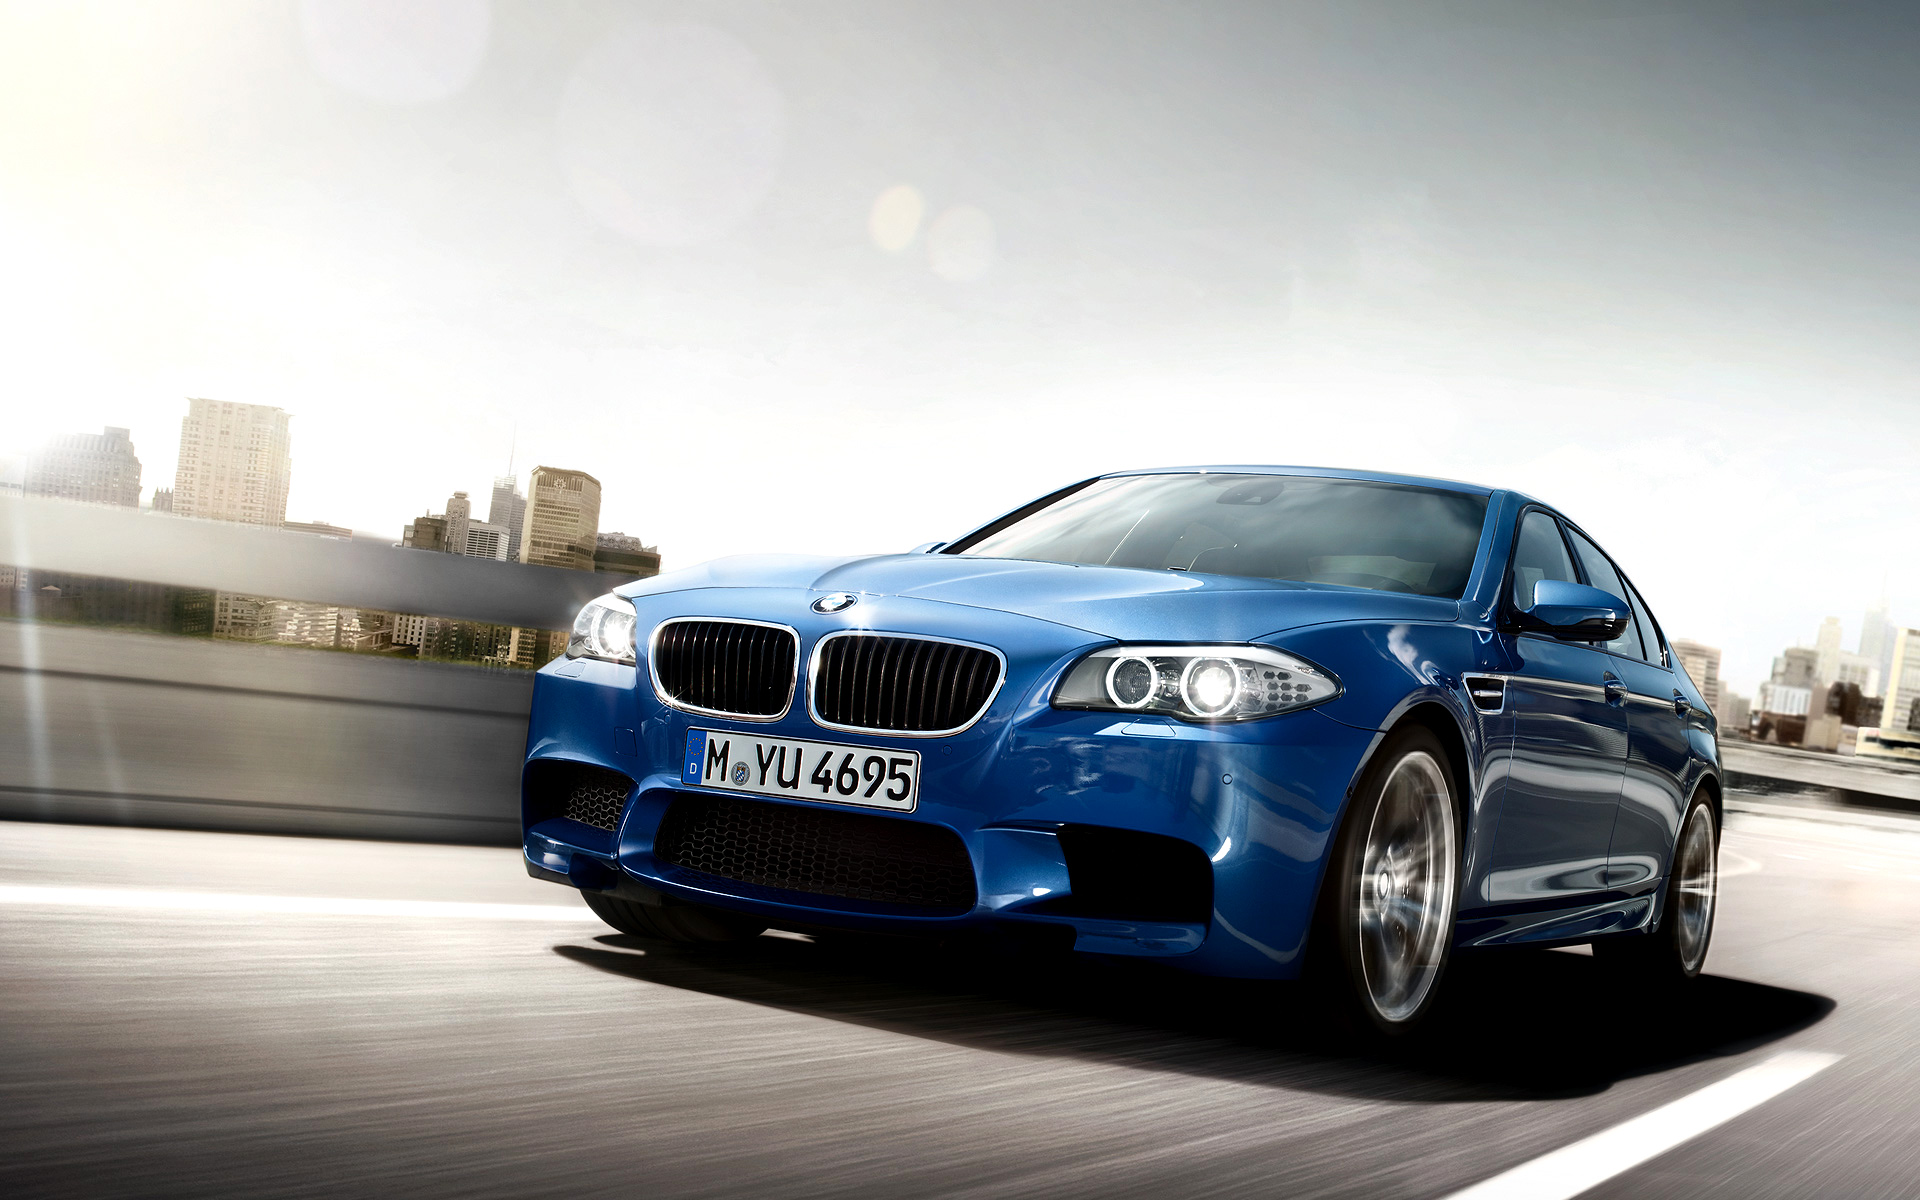 BMW F10 M5 High Quality Wallpapers 1920x1200 wallpaper 01 1920x1200